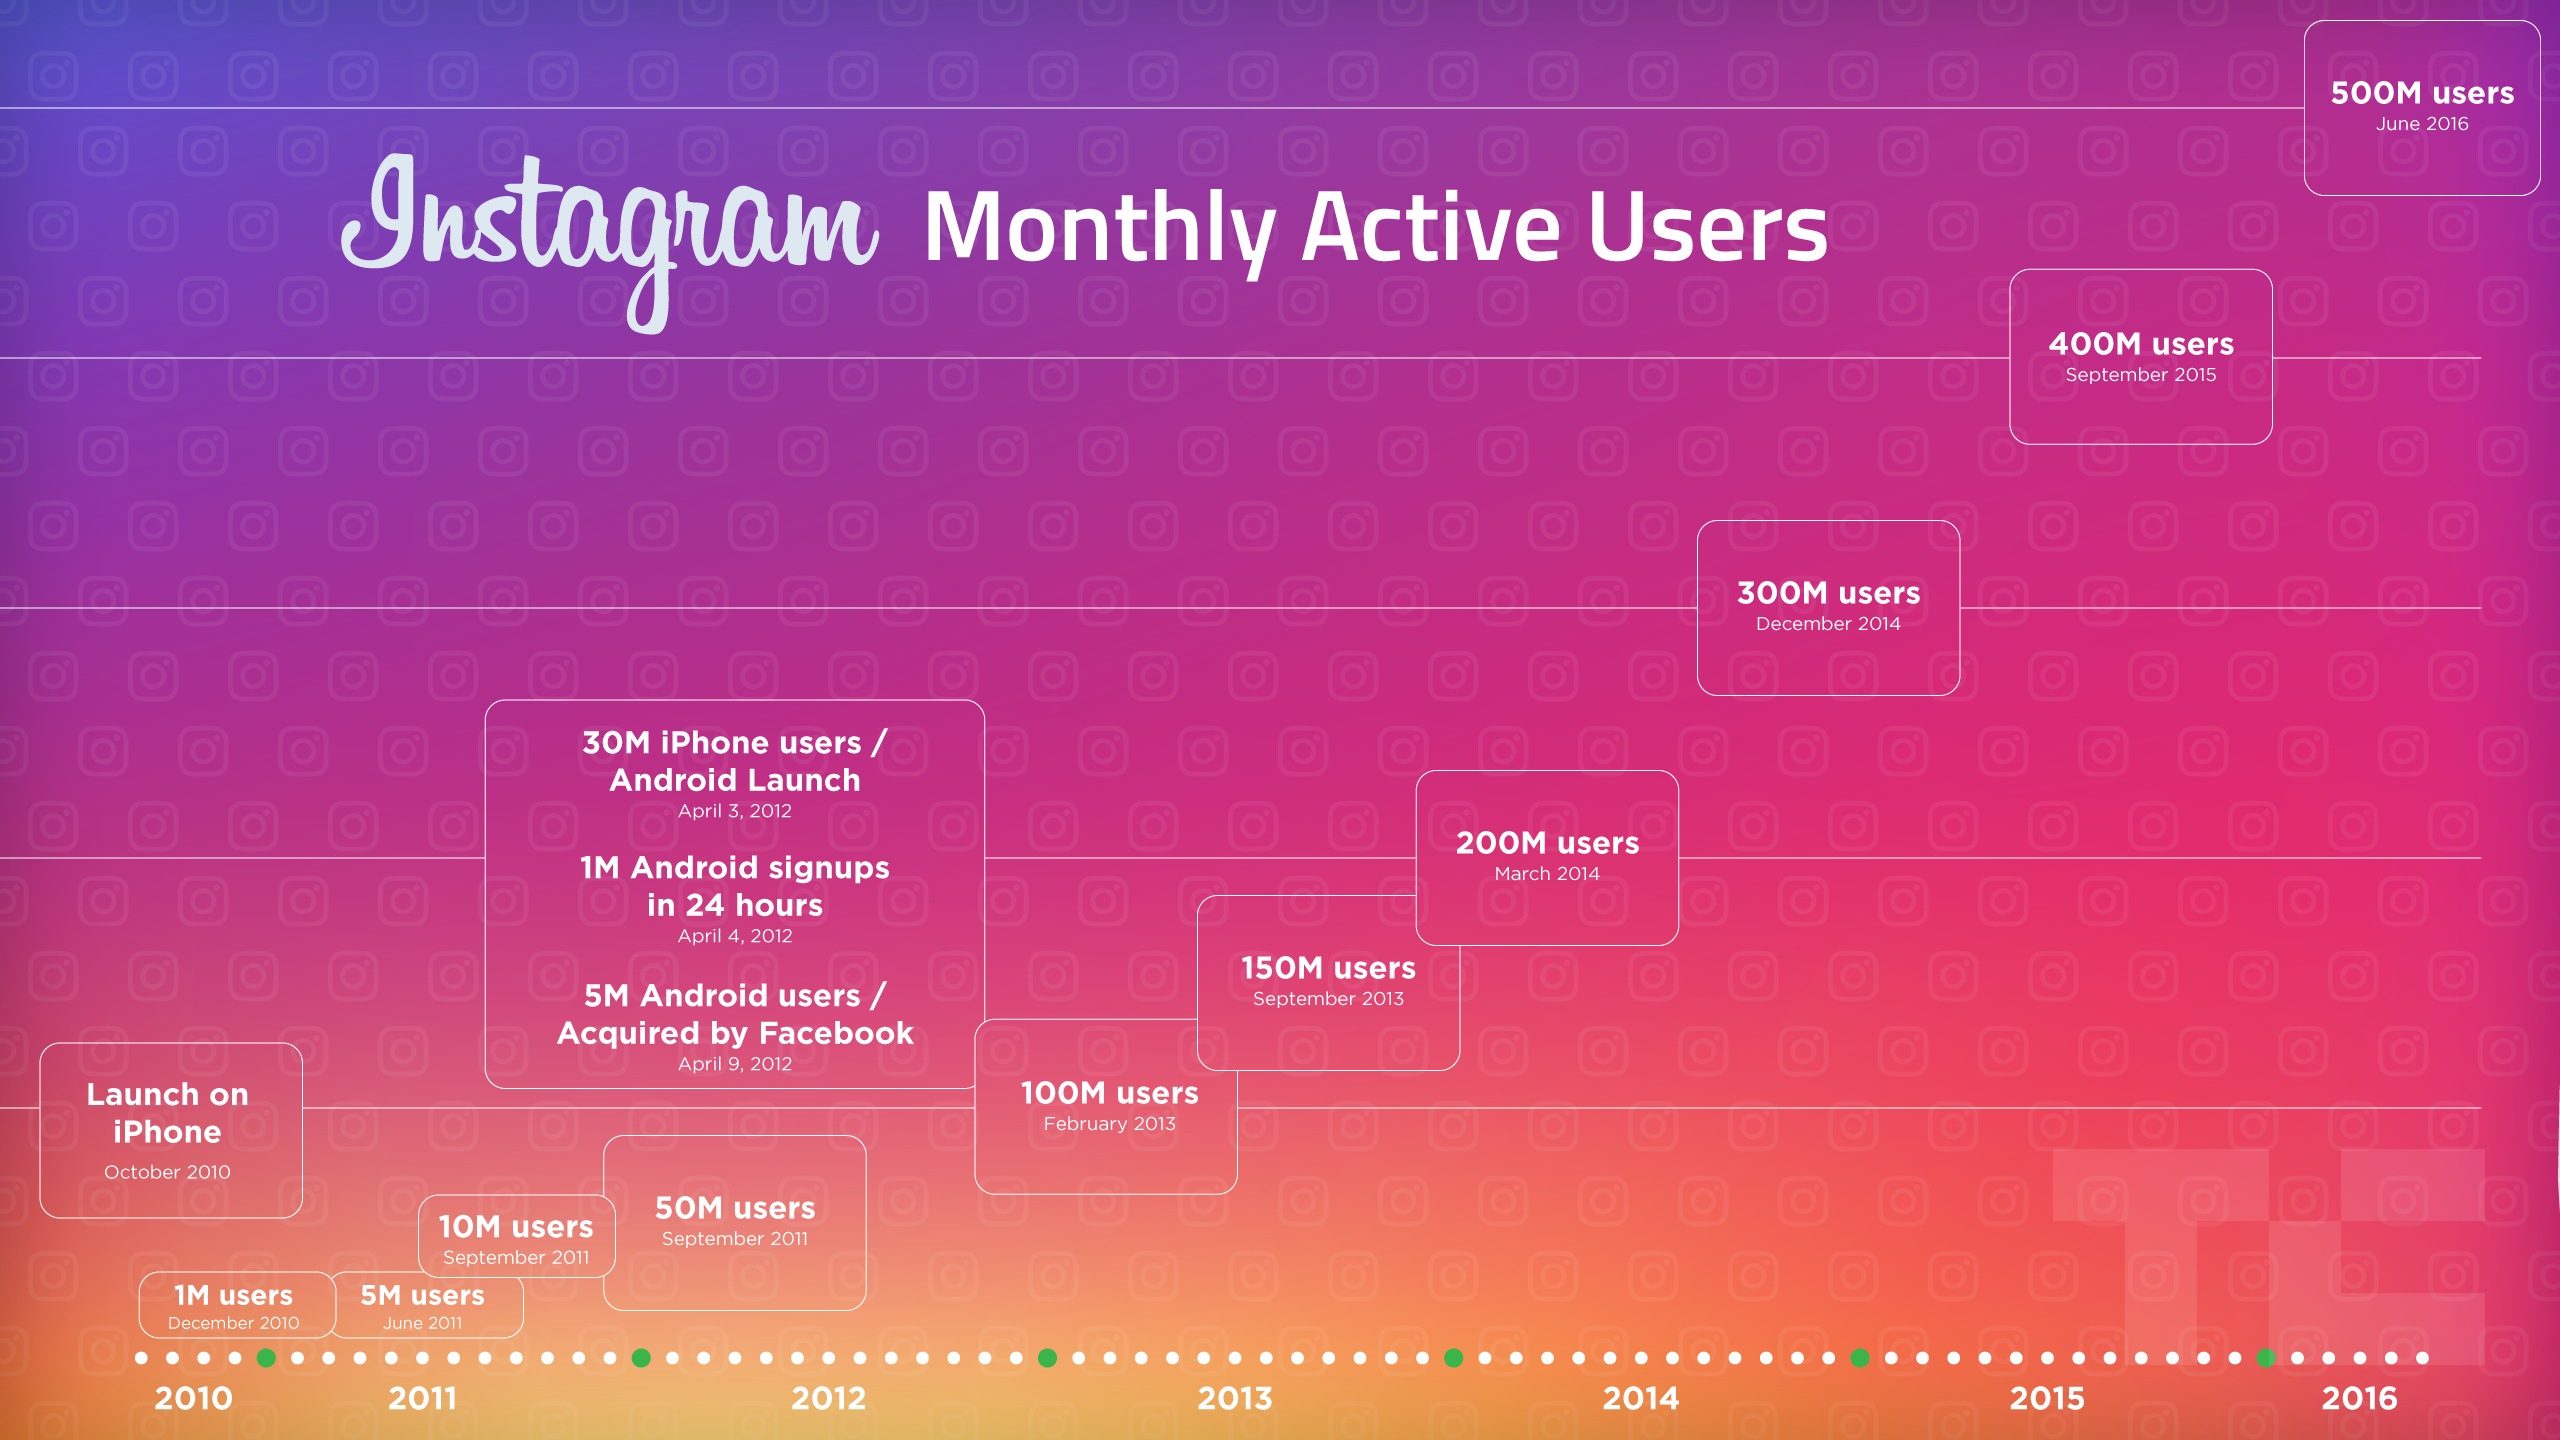 Instagram monthly users 500M